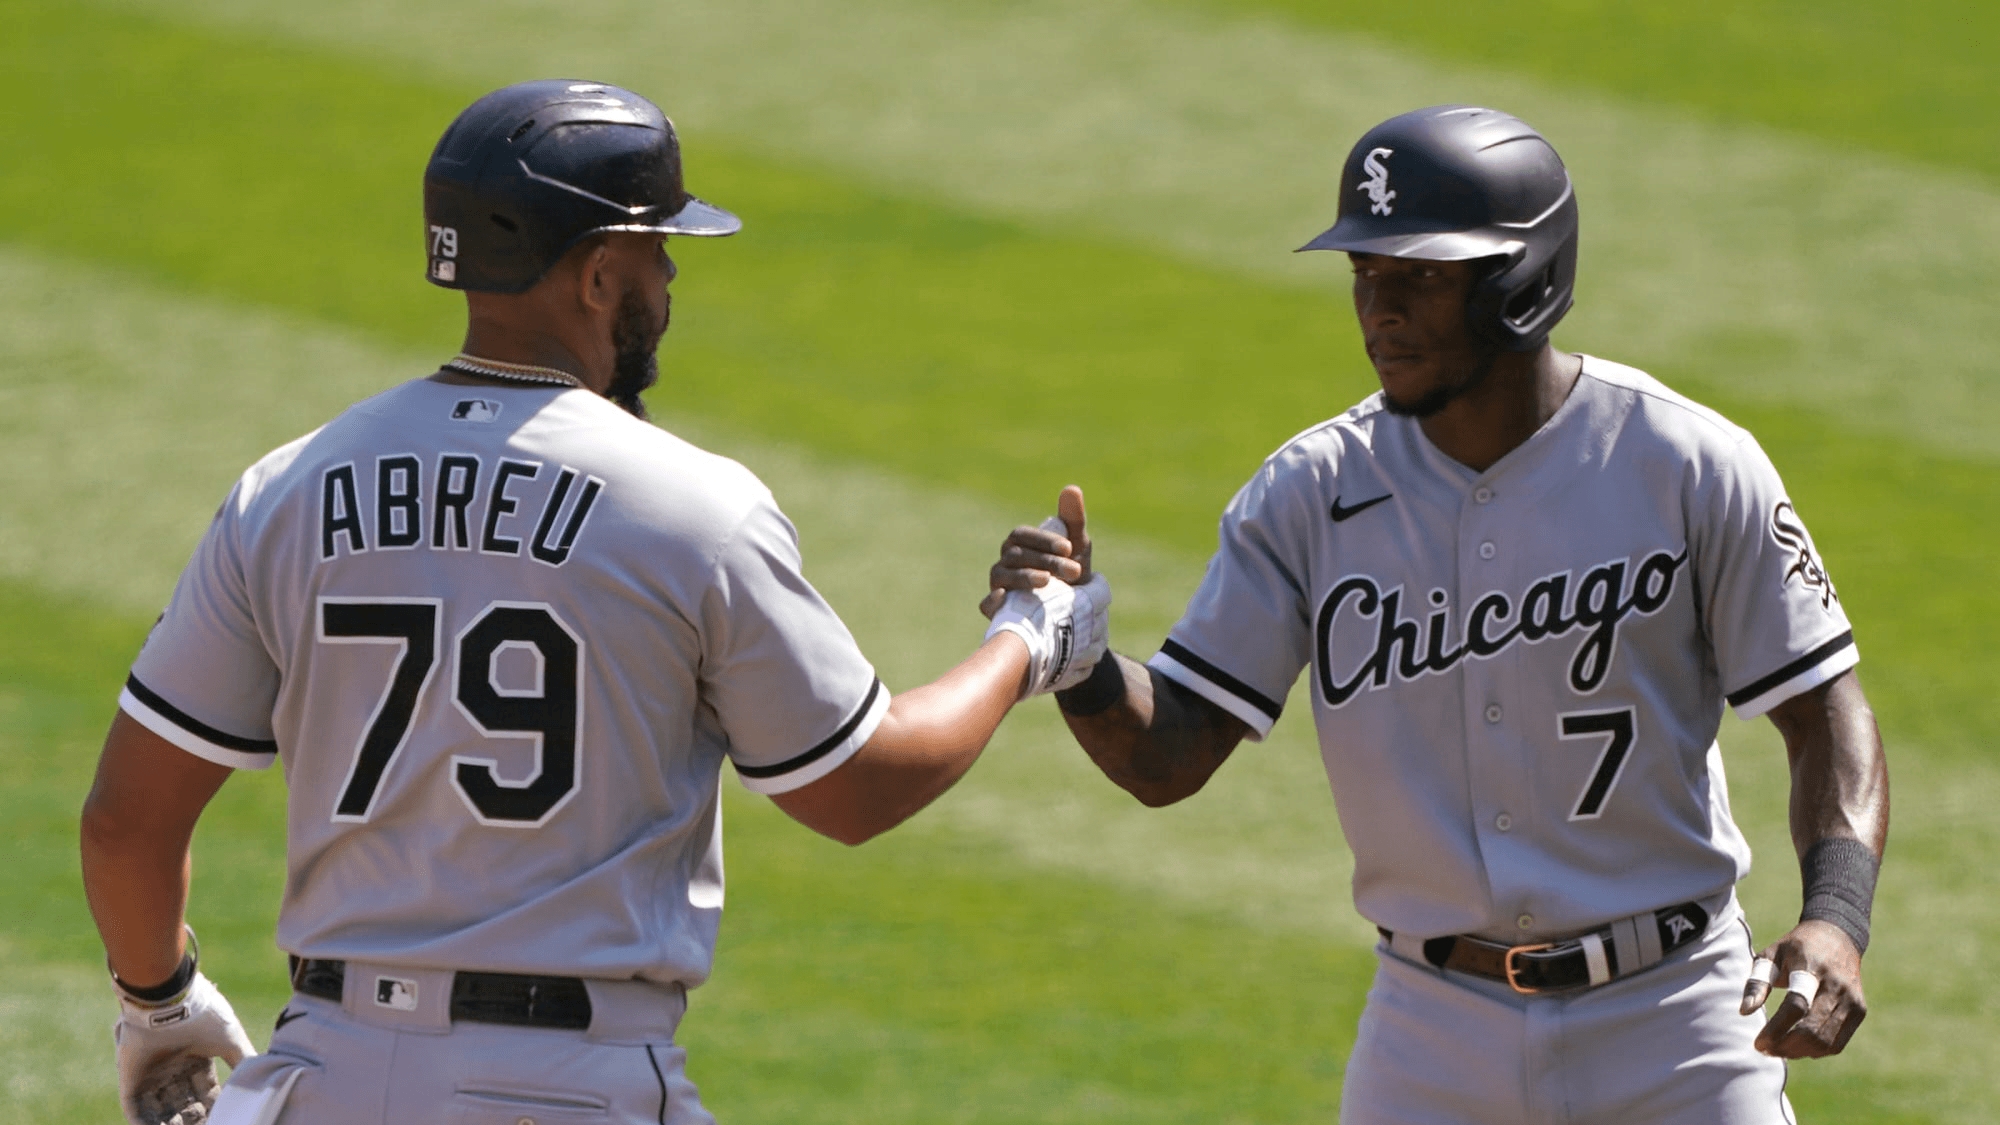 2021 American League Central Preview: Big-Hitting White Sox and Twins to Battle It Out for Central Title